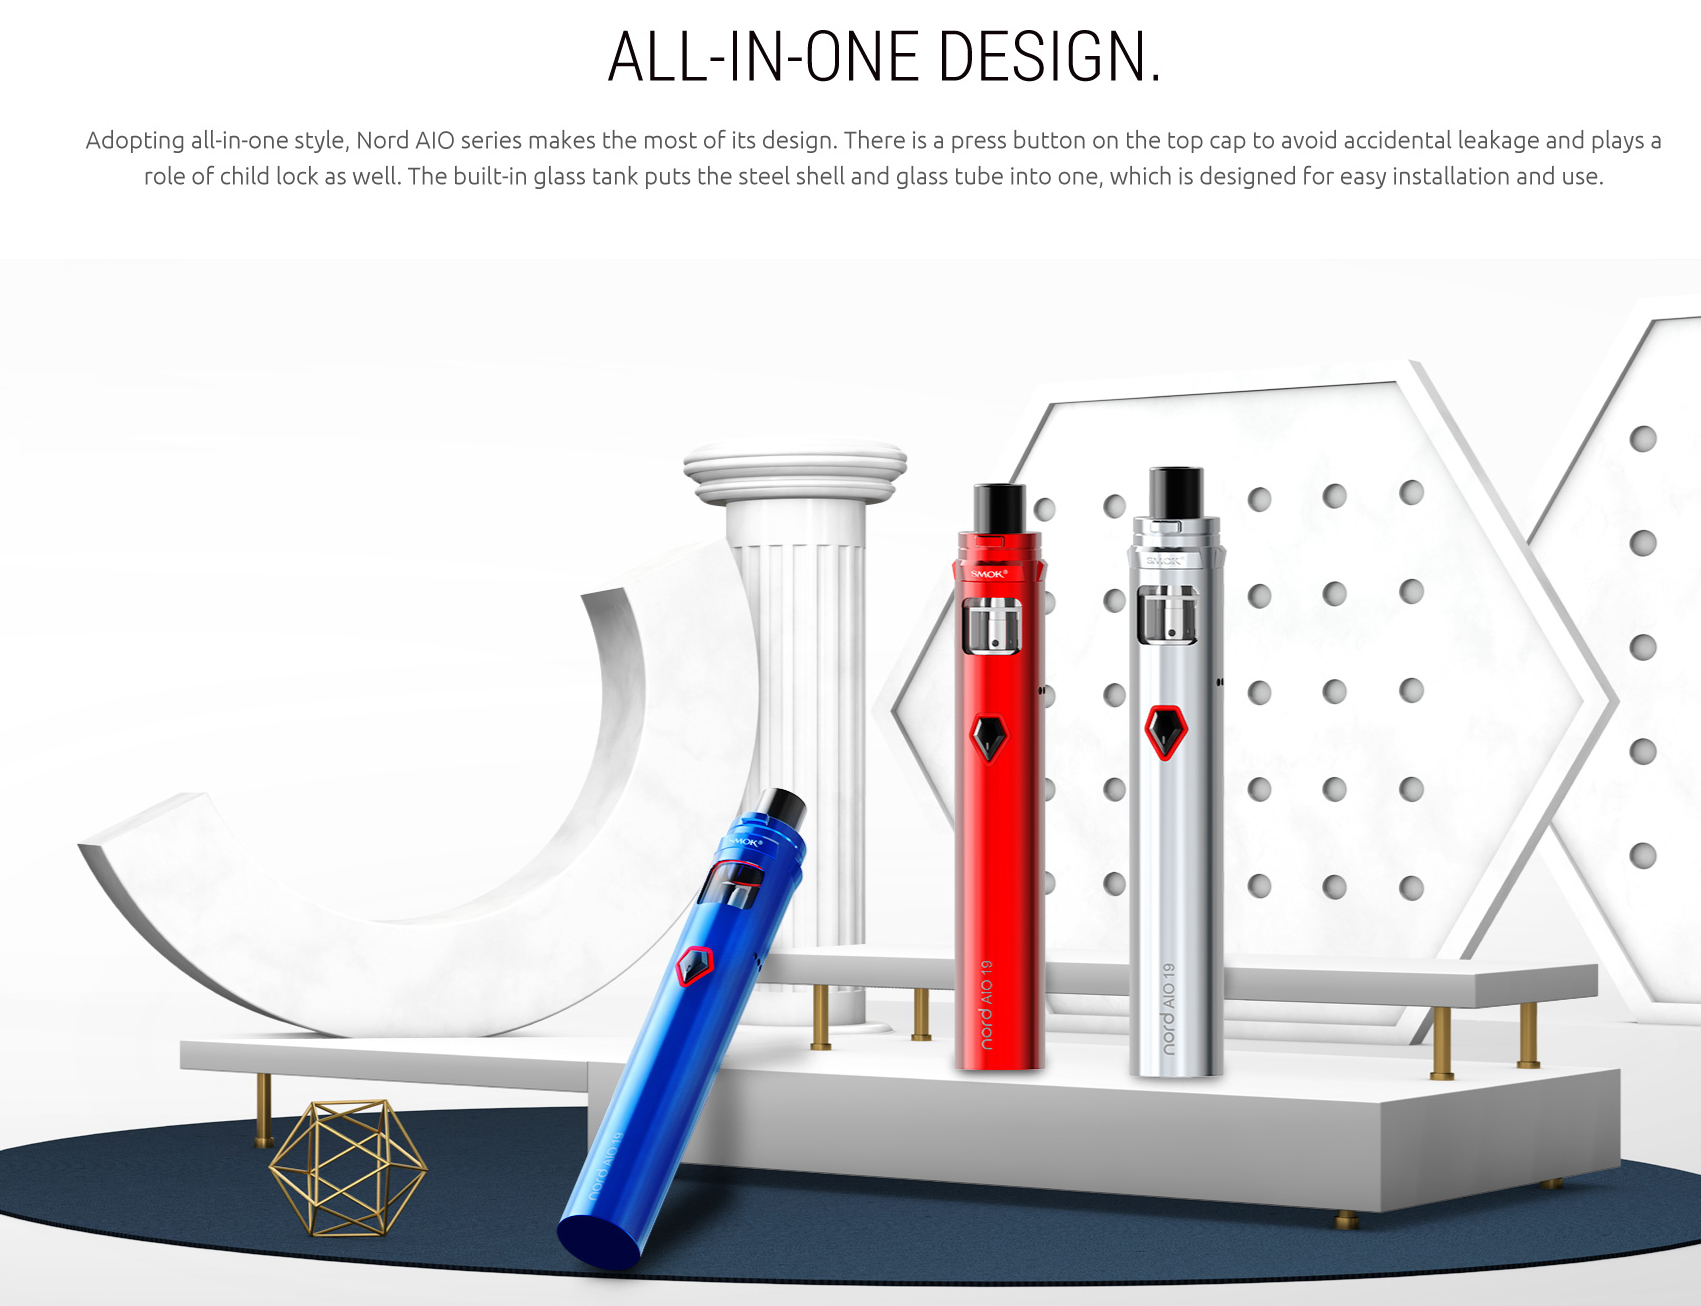 SMOK Nord AIO 19 Kit AIO Design